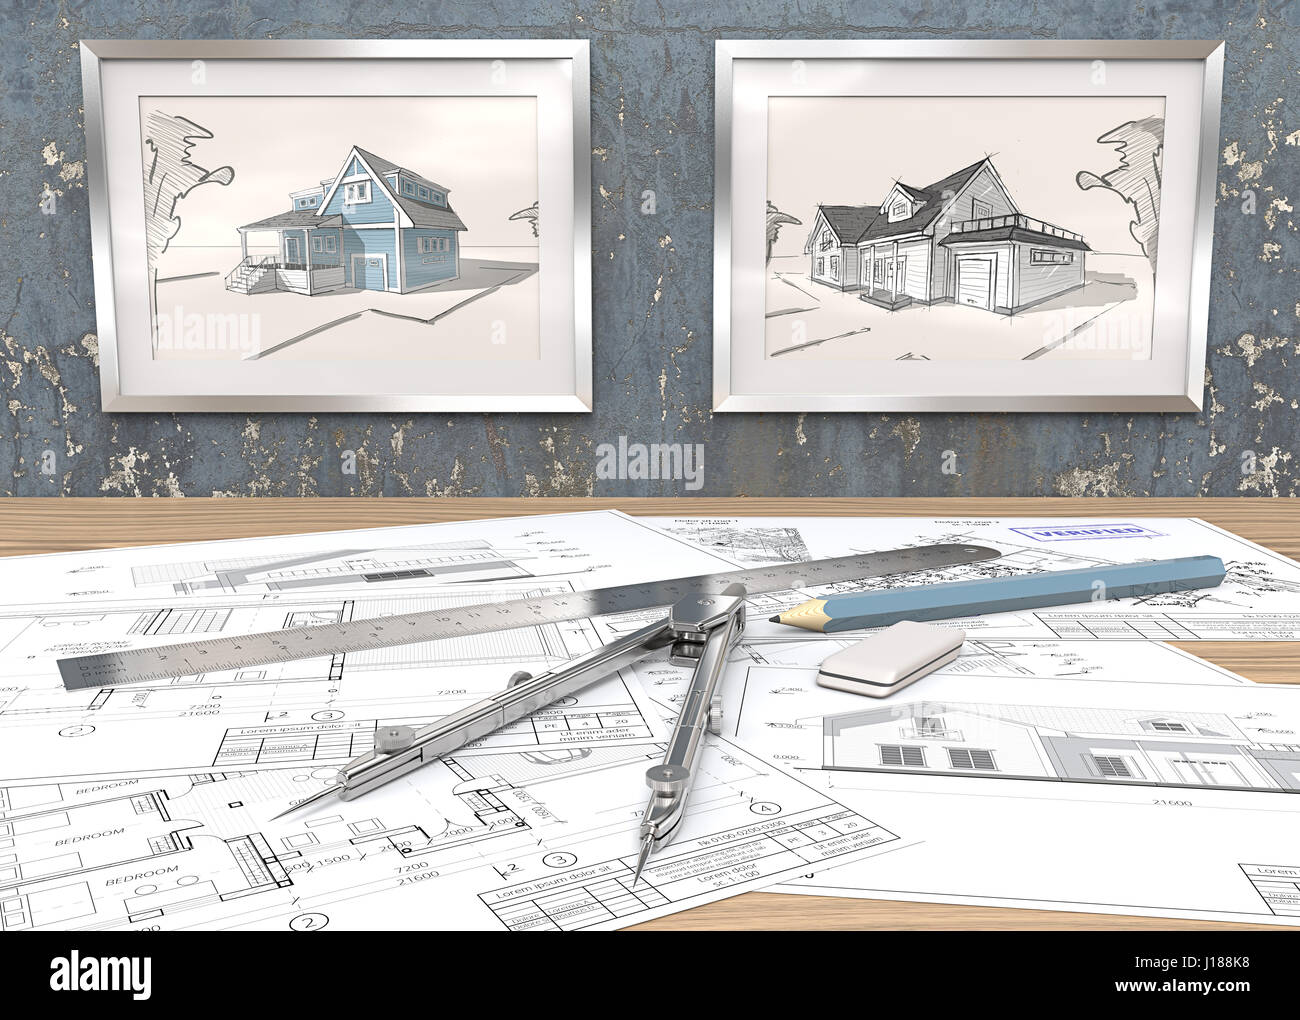 2 metal picture frames on blue worn concrete wall with house stock 2 metal picture frames on blue worn concrete wall with house sketches generic architectural blueprints on table ruler pencil and divider of metal malvernweather Images